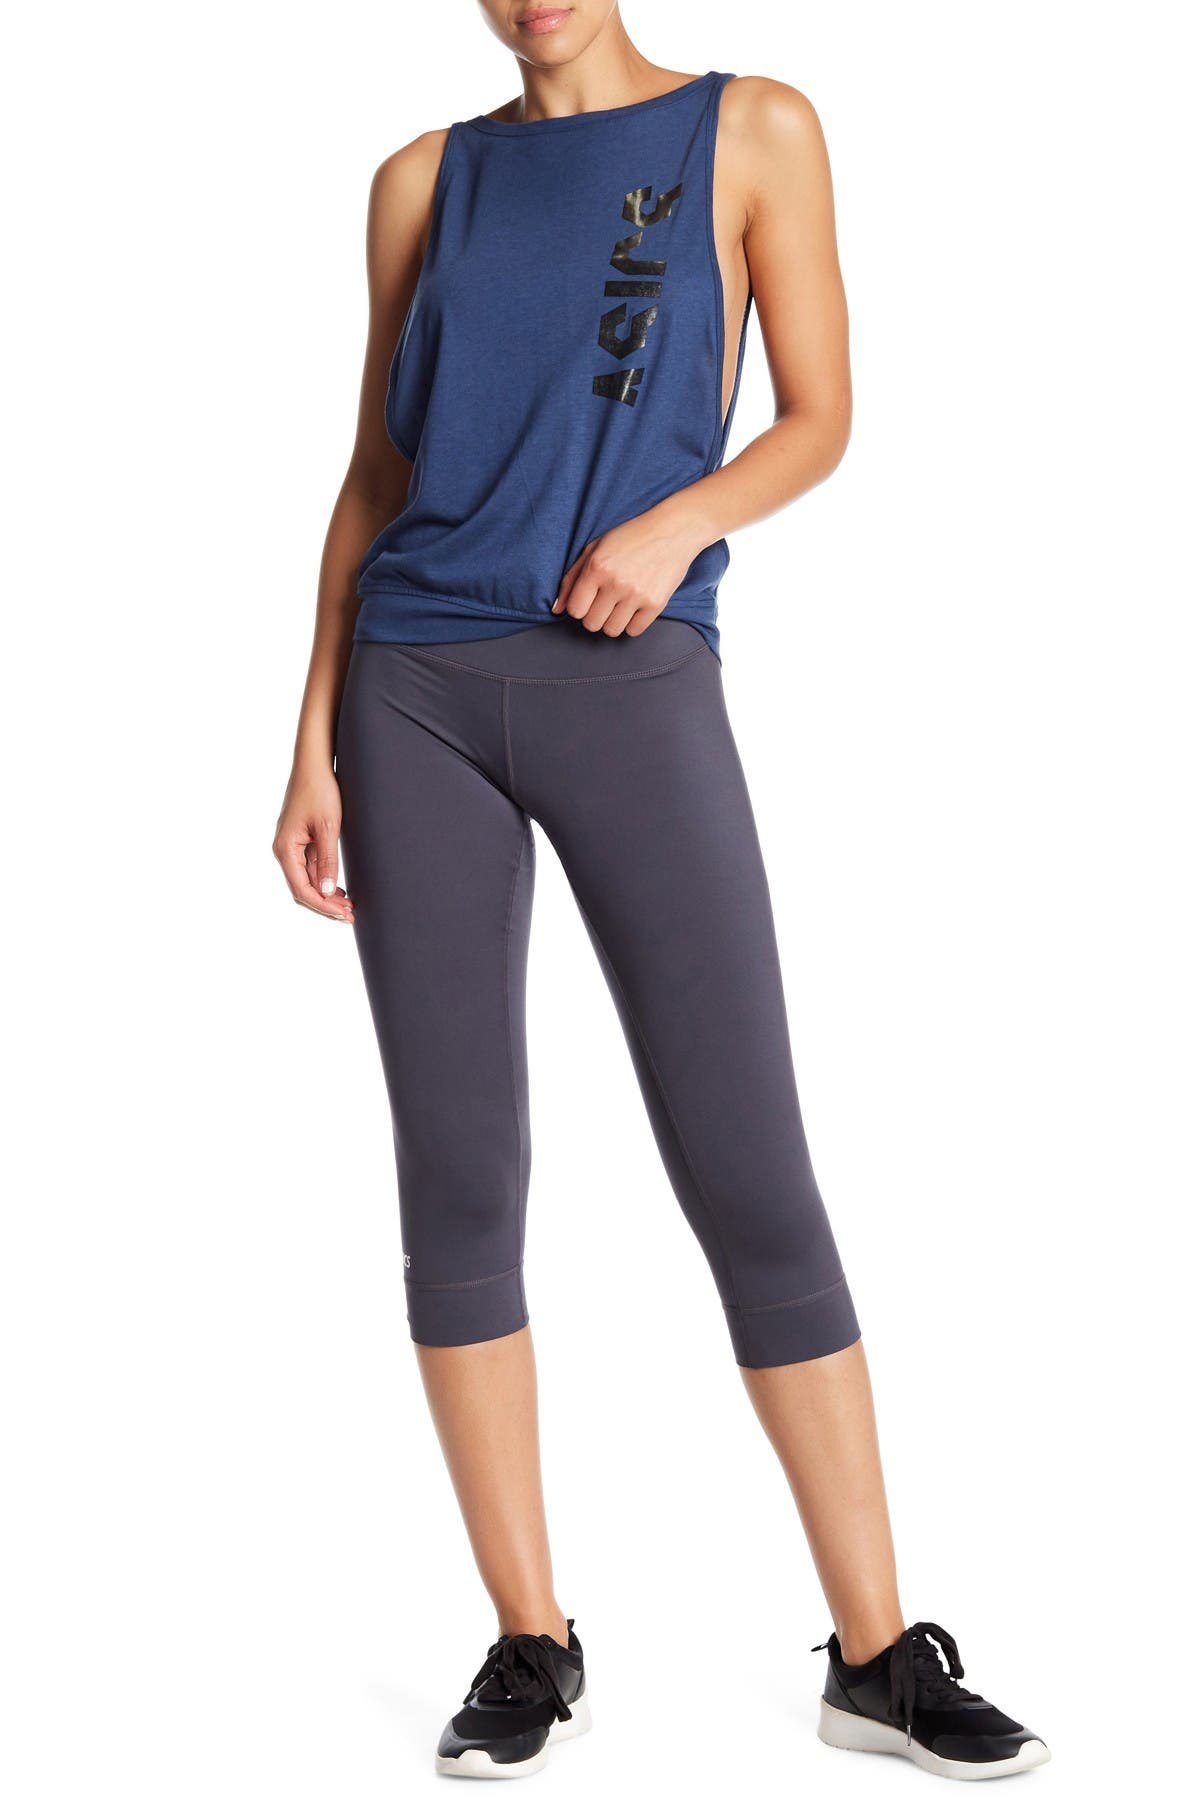 Image of ASICS 3/4 Length Capri Leggings